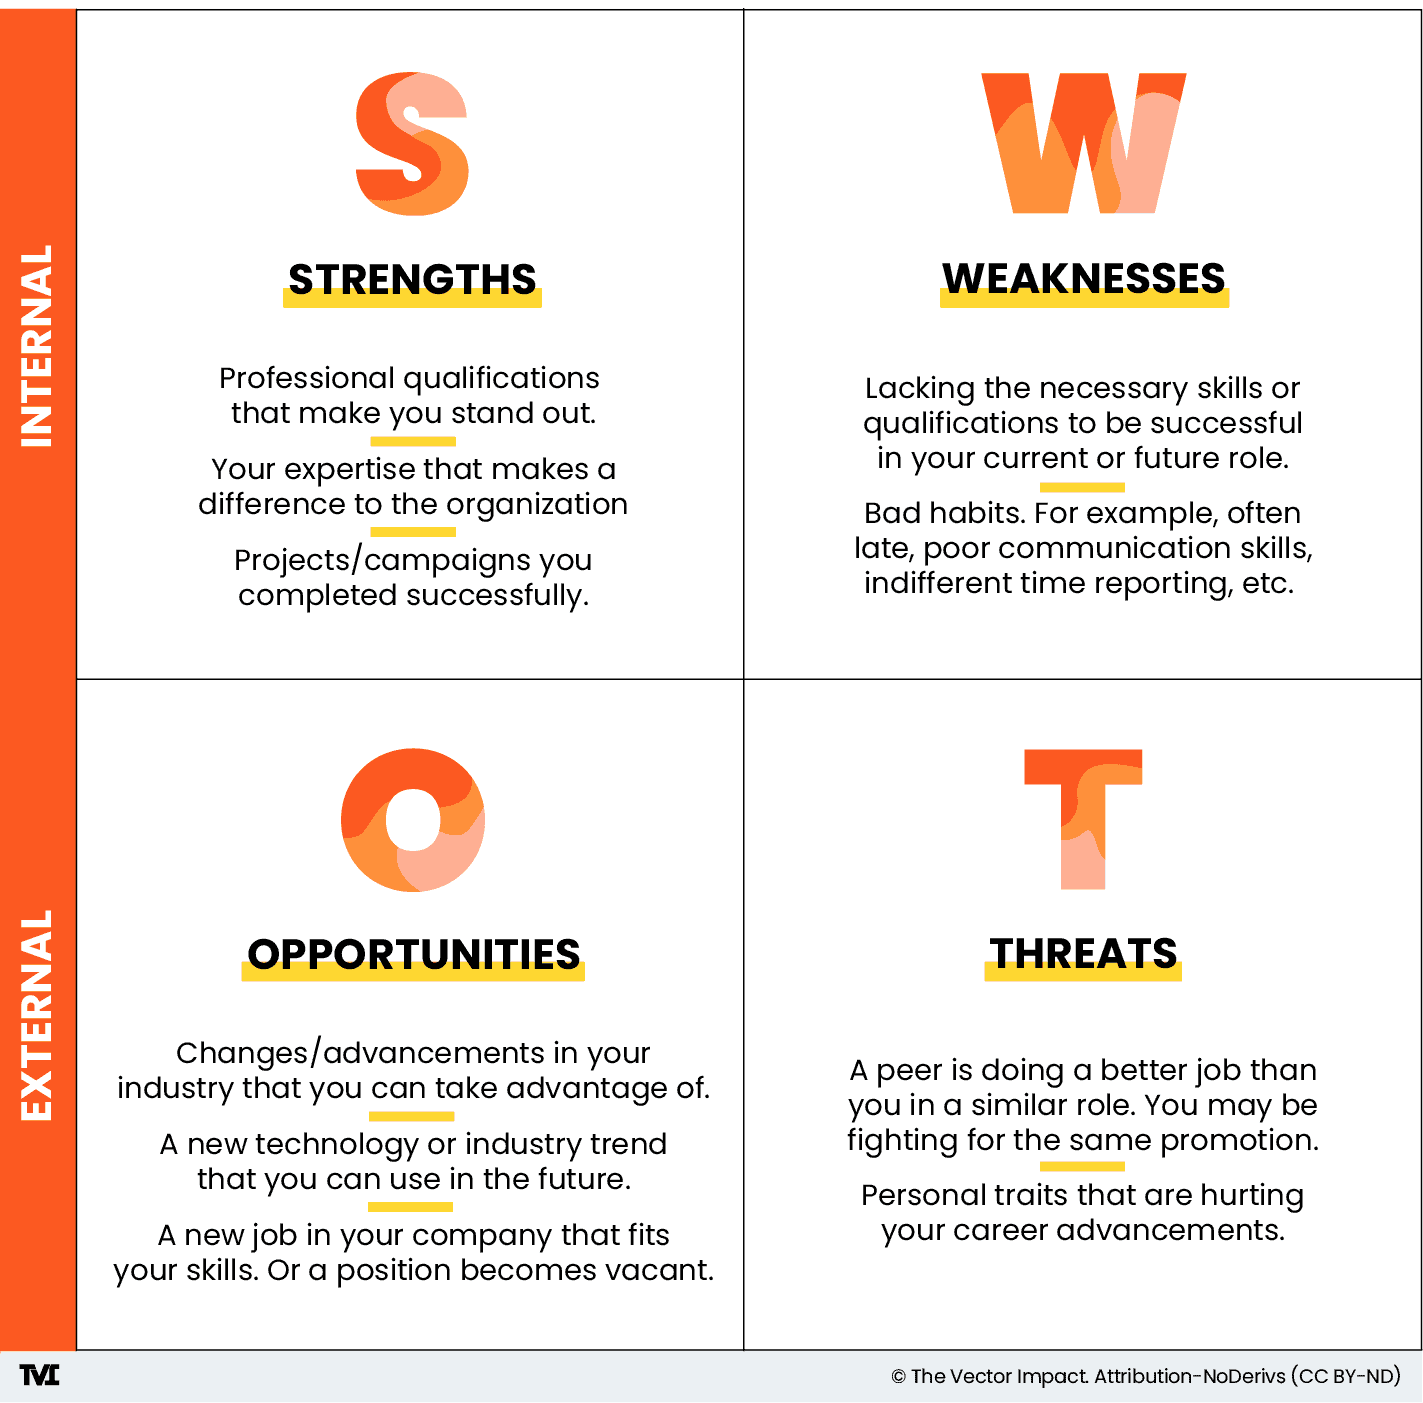 SWOT analysis graphic describing strengths, weaknesses, opportunities, and threats